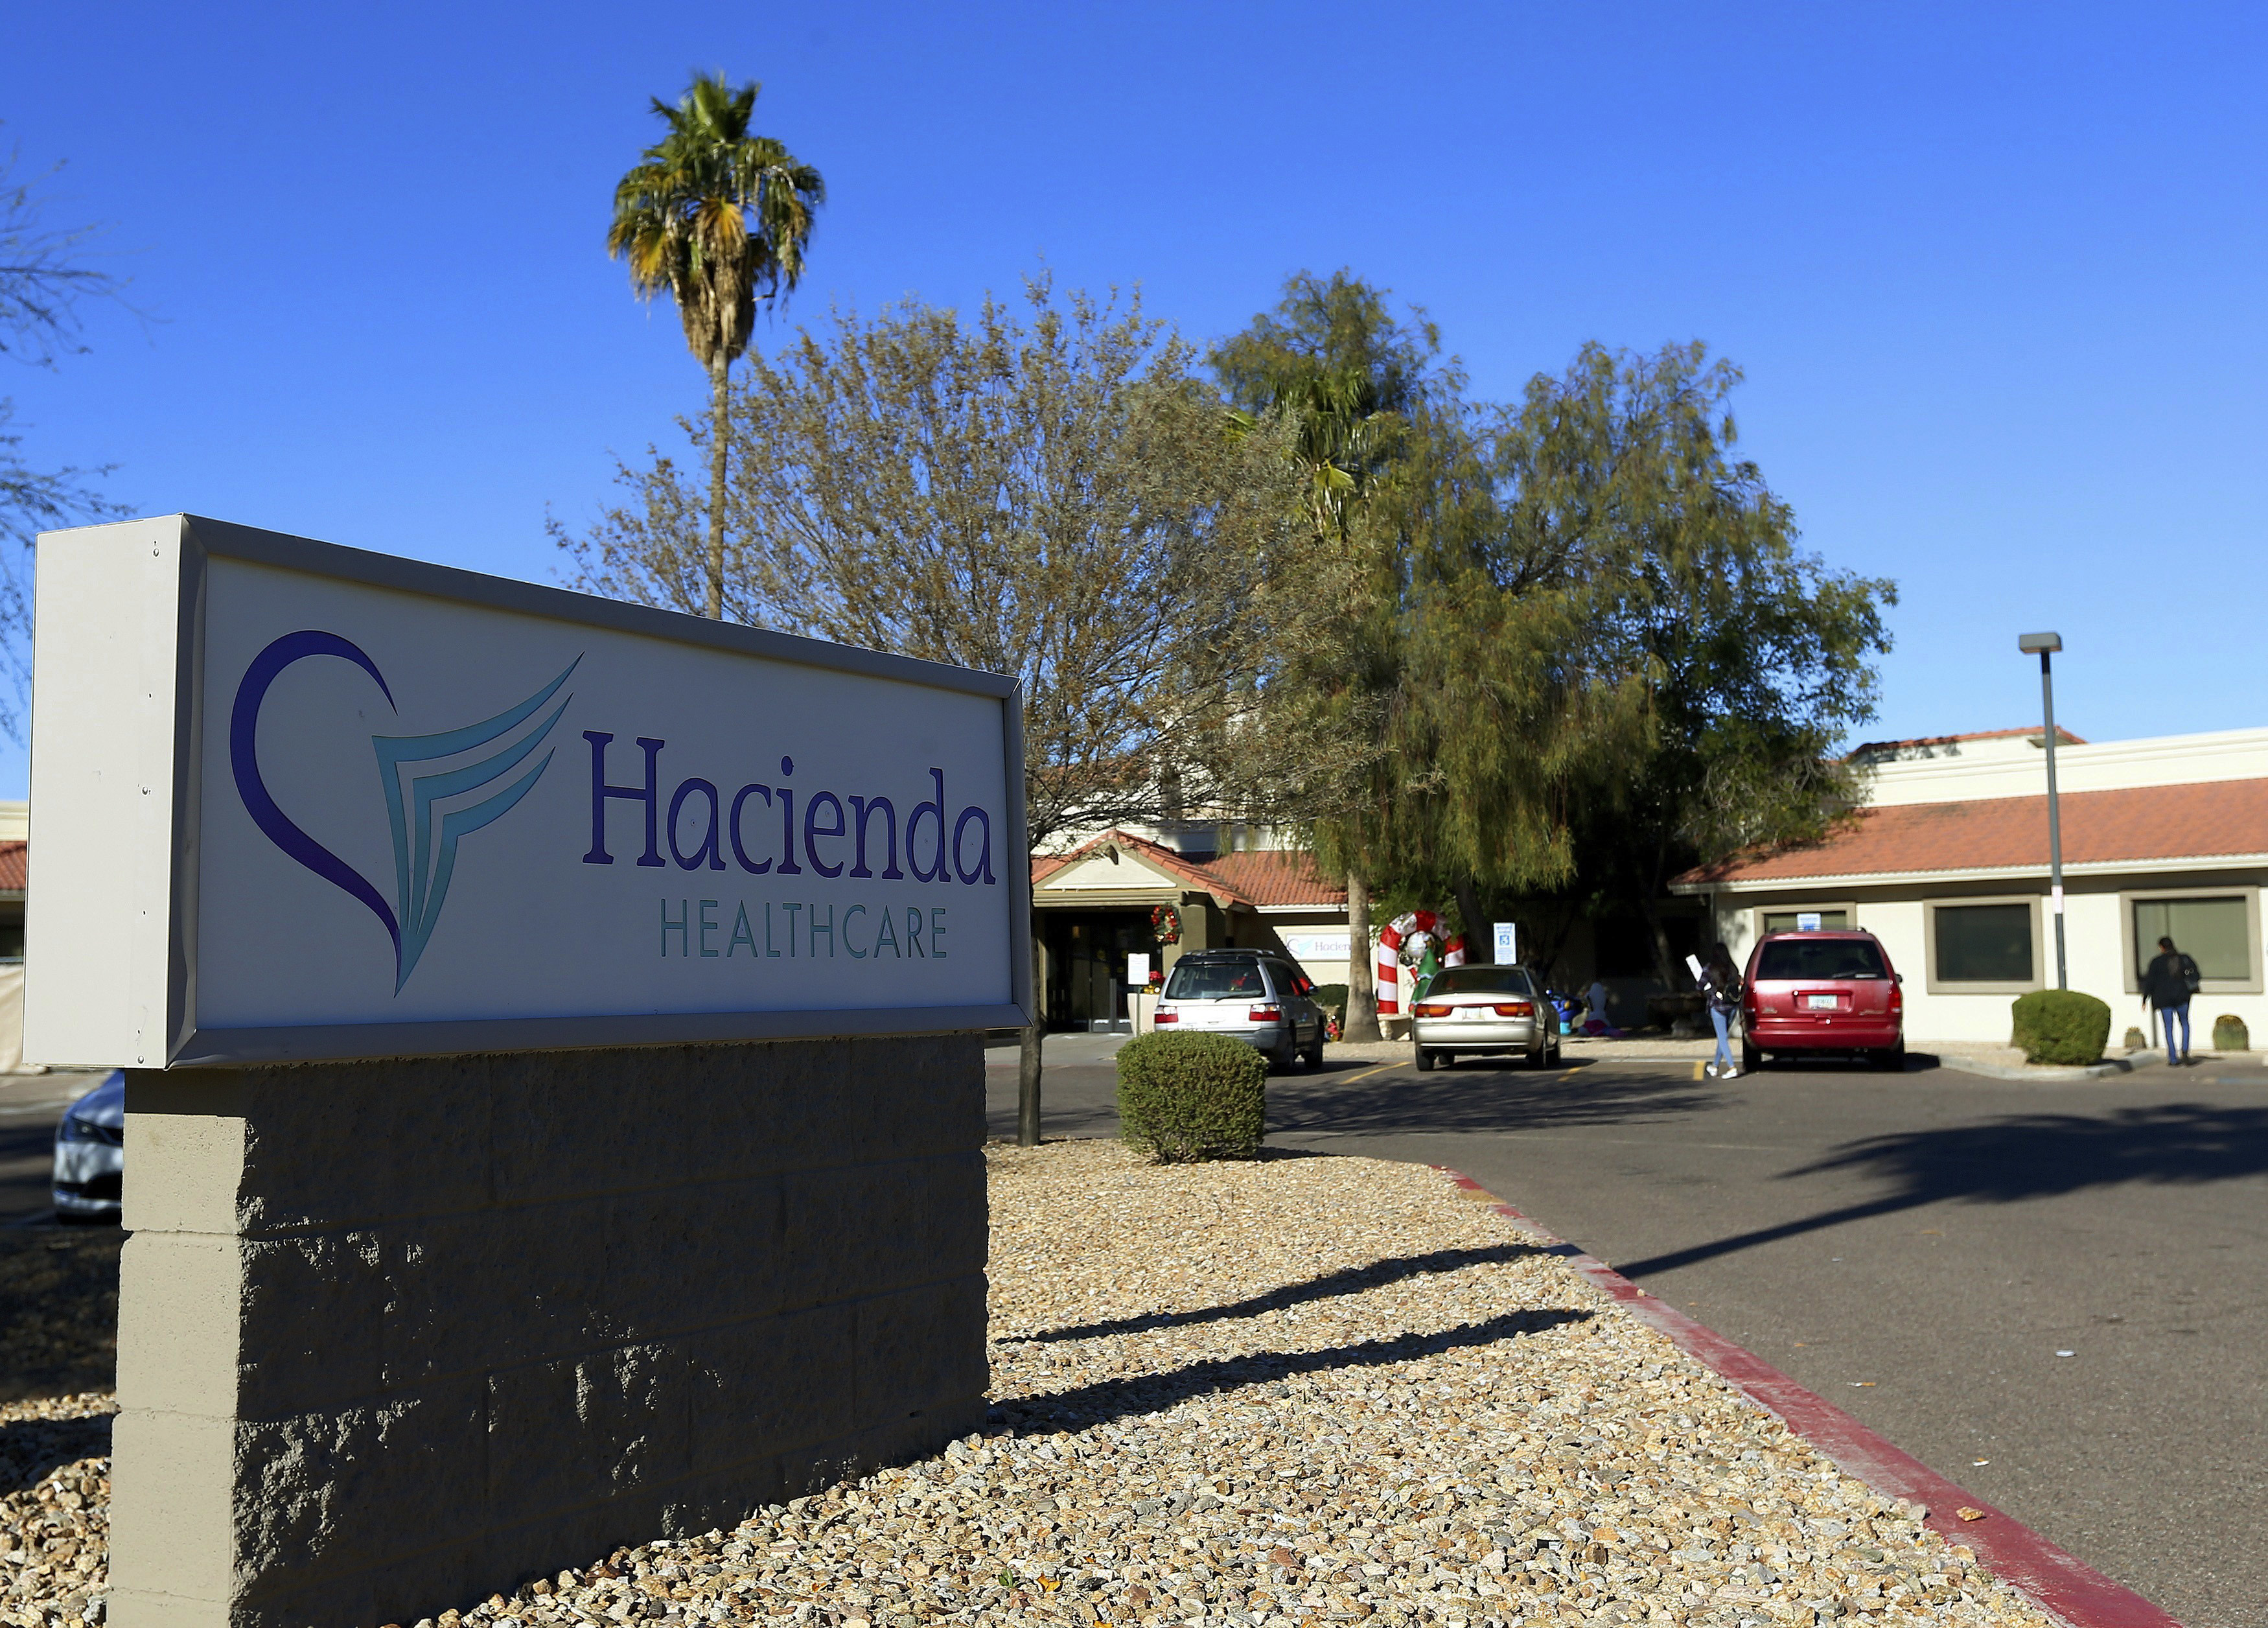 This Friday, Jan. 4, 2019, file photo shows Hacienda HealthCare in Phoenix. Two doctors who cared for an incapacitated woman who gave birth as a result of a sexual assault are no longer providing medical services at the long-term care center in Phoenix, Hacienda HealthCare said Sunday, Jan. 20.